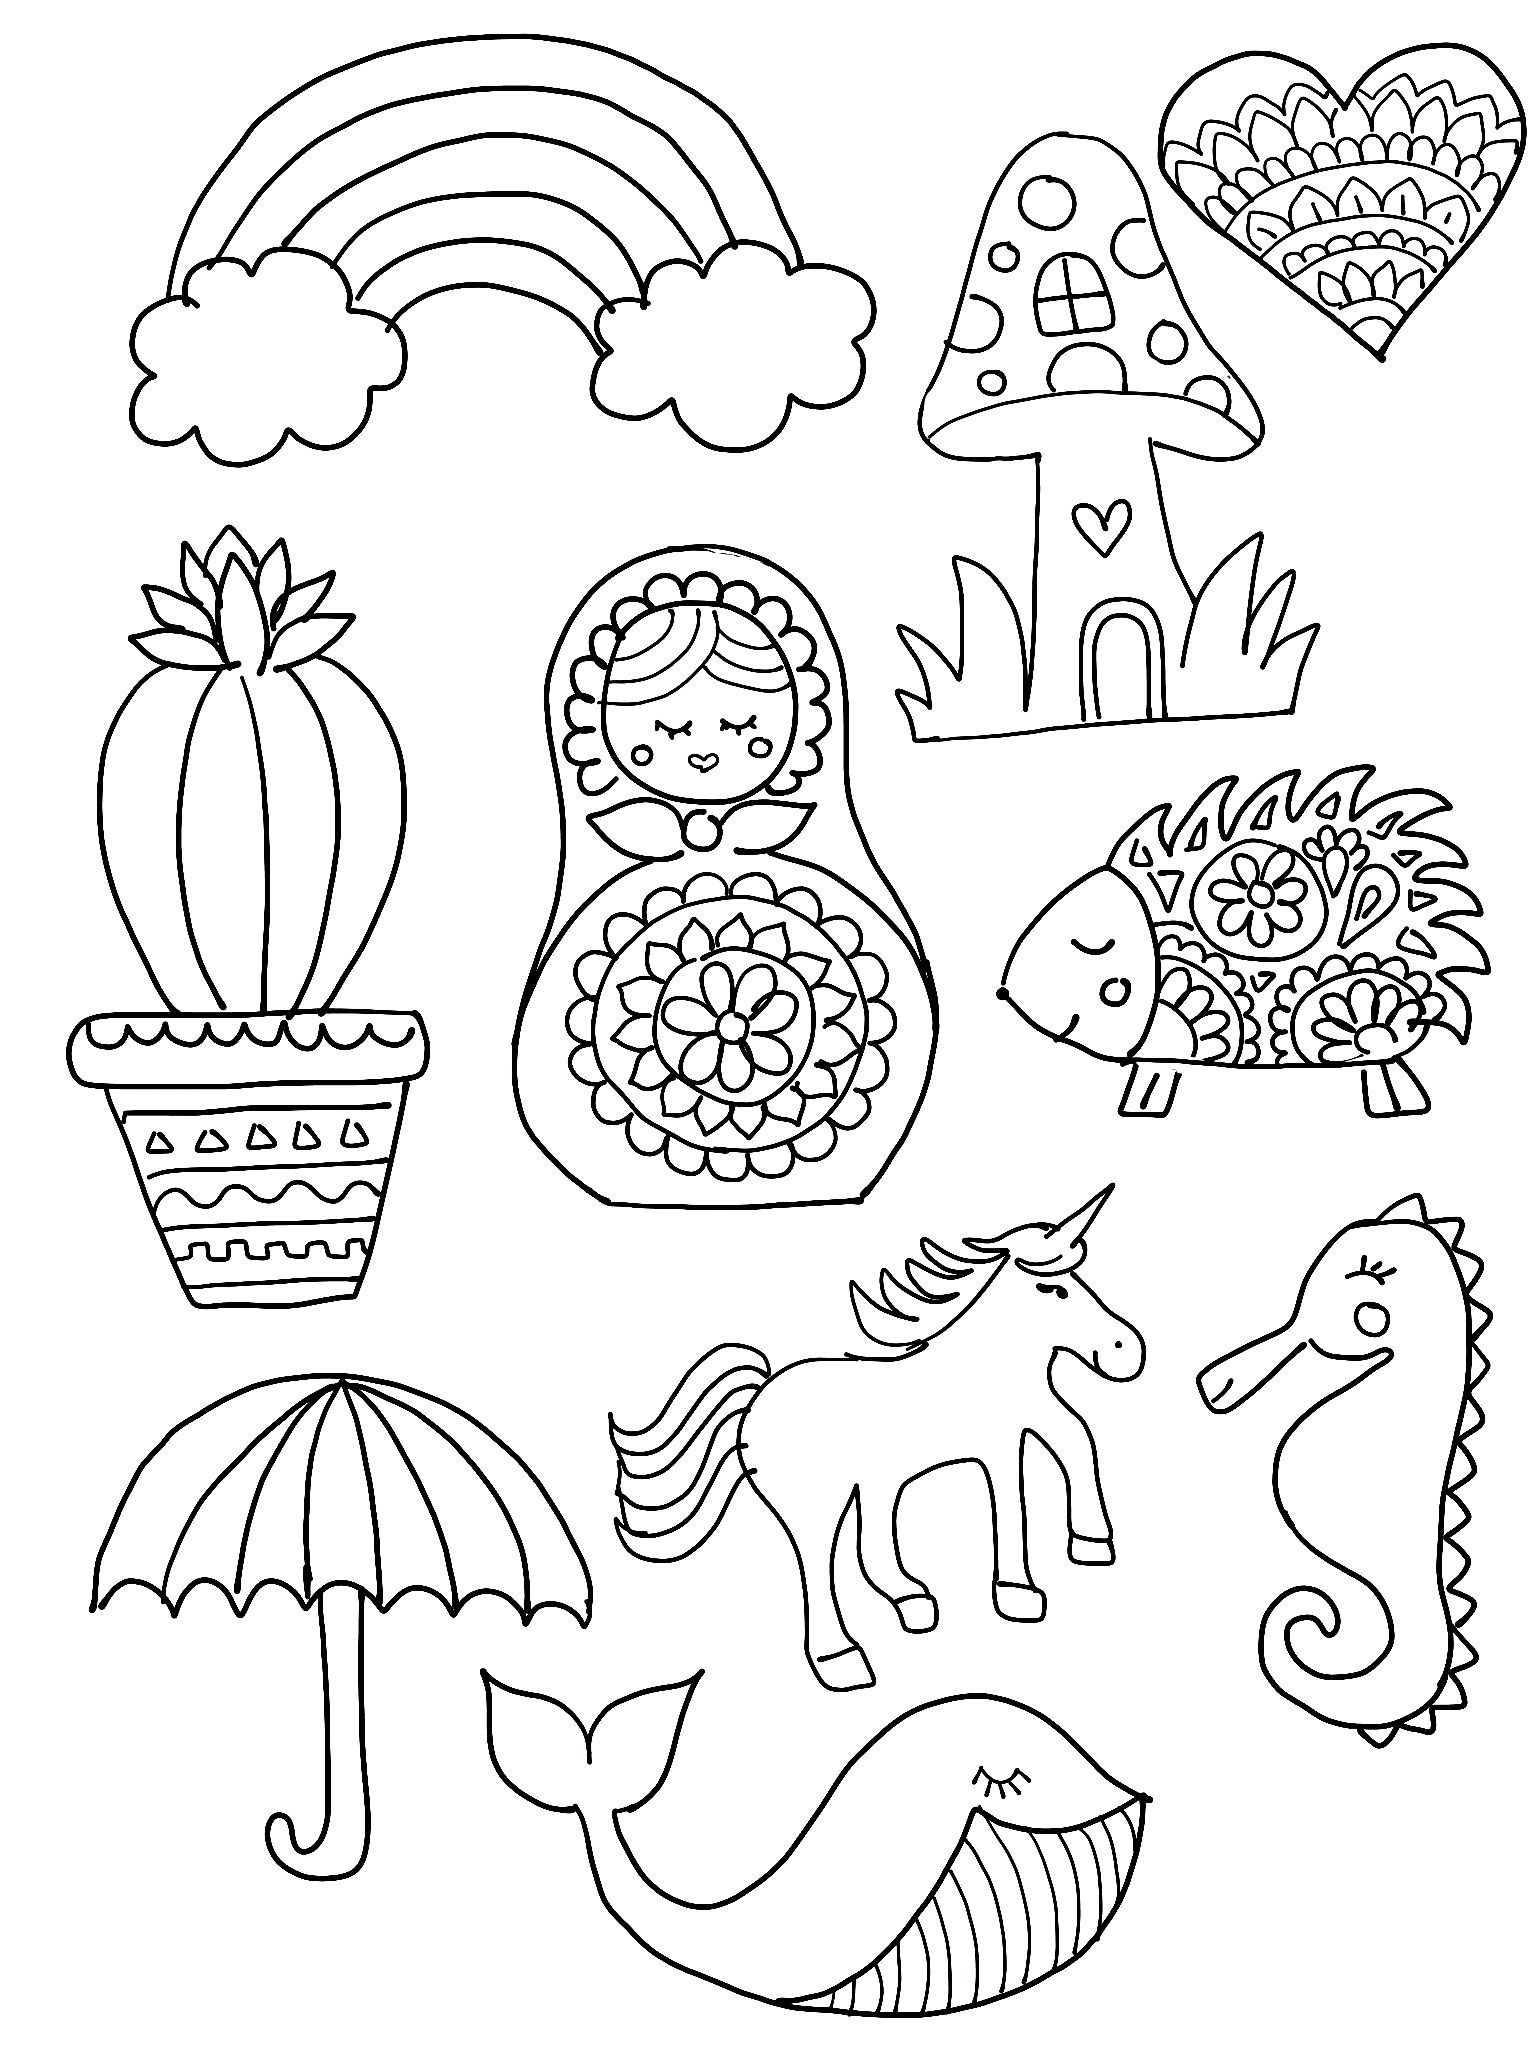 DIY Shrinky Dink Charms | Pinterest | Shrinky dinks, Hedgehogs and Cacti